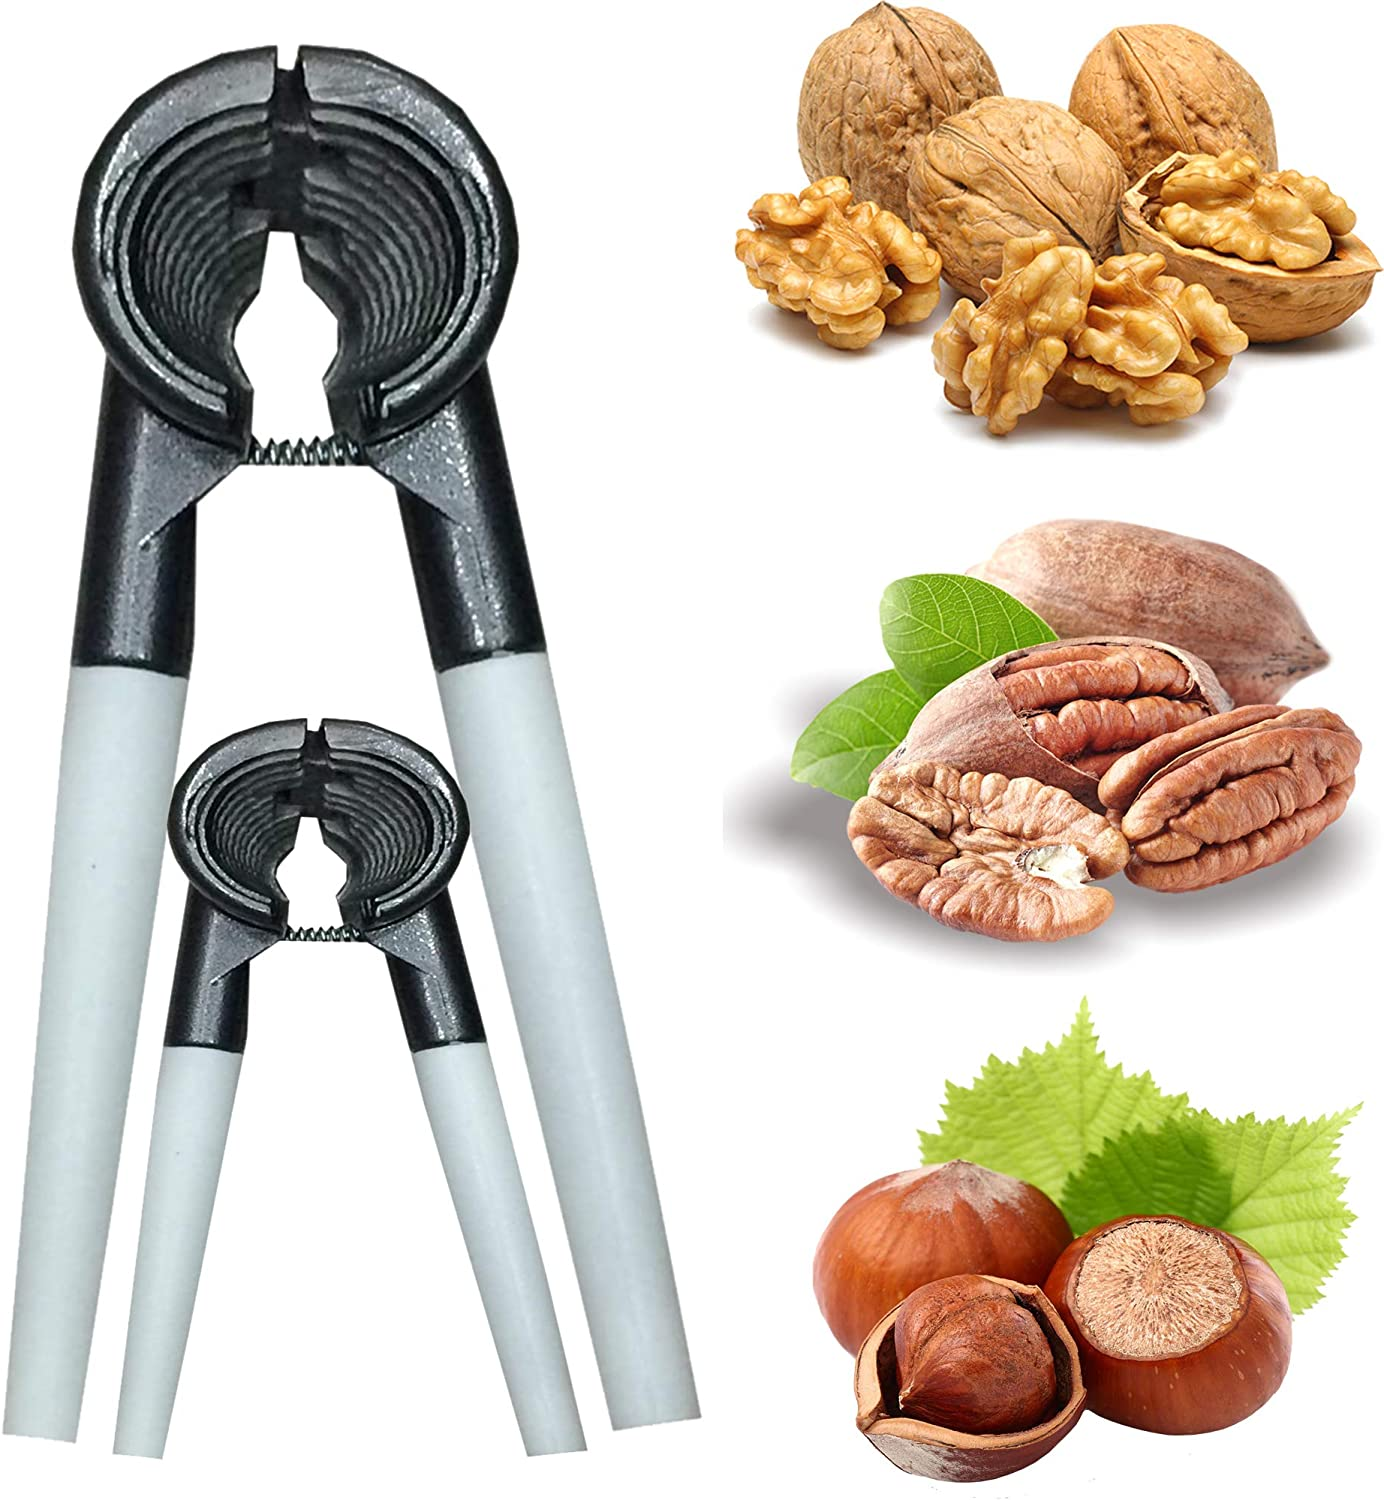 Heavy Duty Nut Cracker Innovative Design Works Great on Walnuts, Pecan Nuts, Hazelnuts, Almonds, Brazil Nuts and Many other Nuts - Very Easy and Quick to Use (Dual)